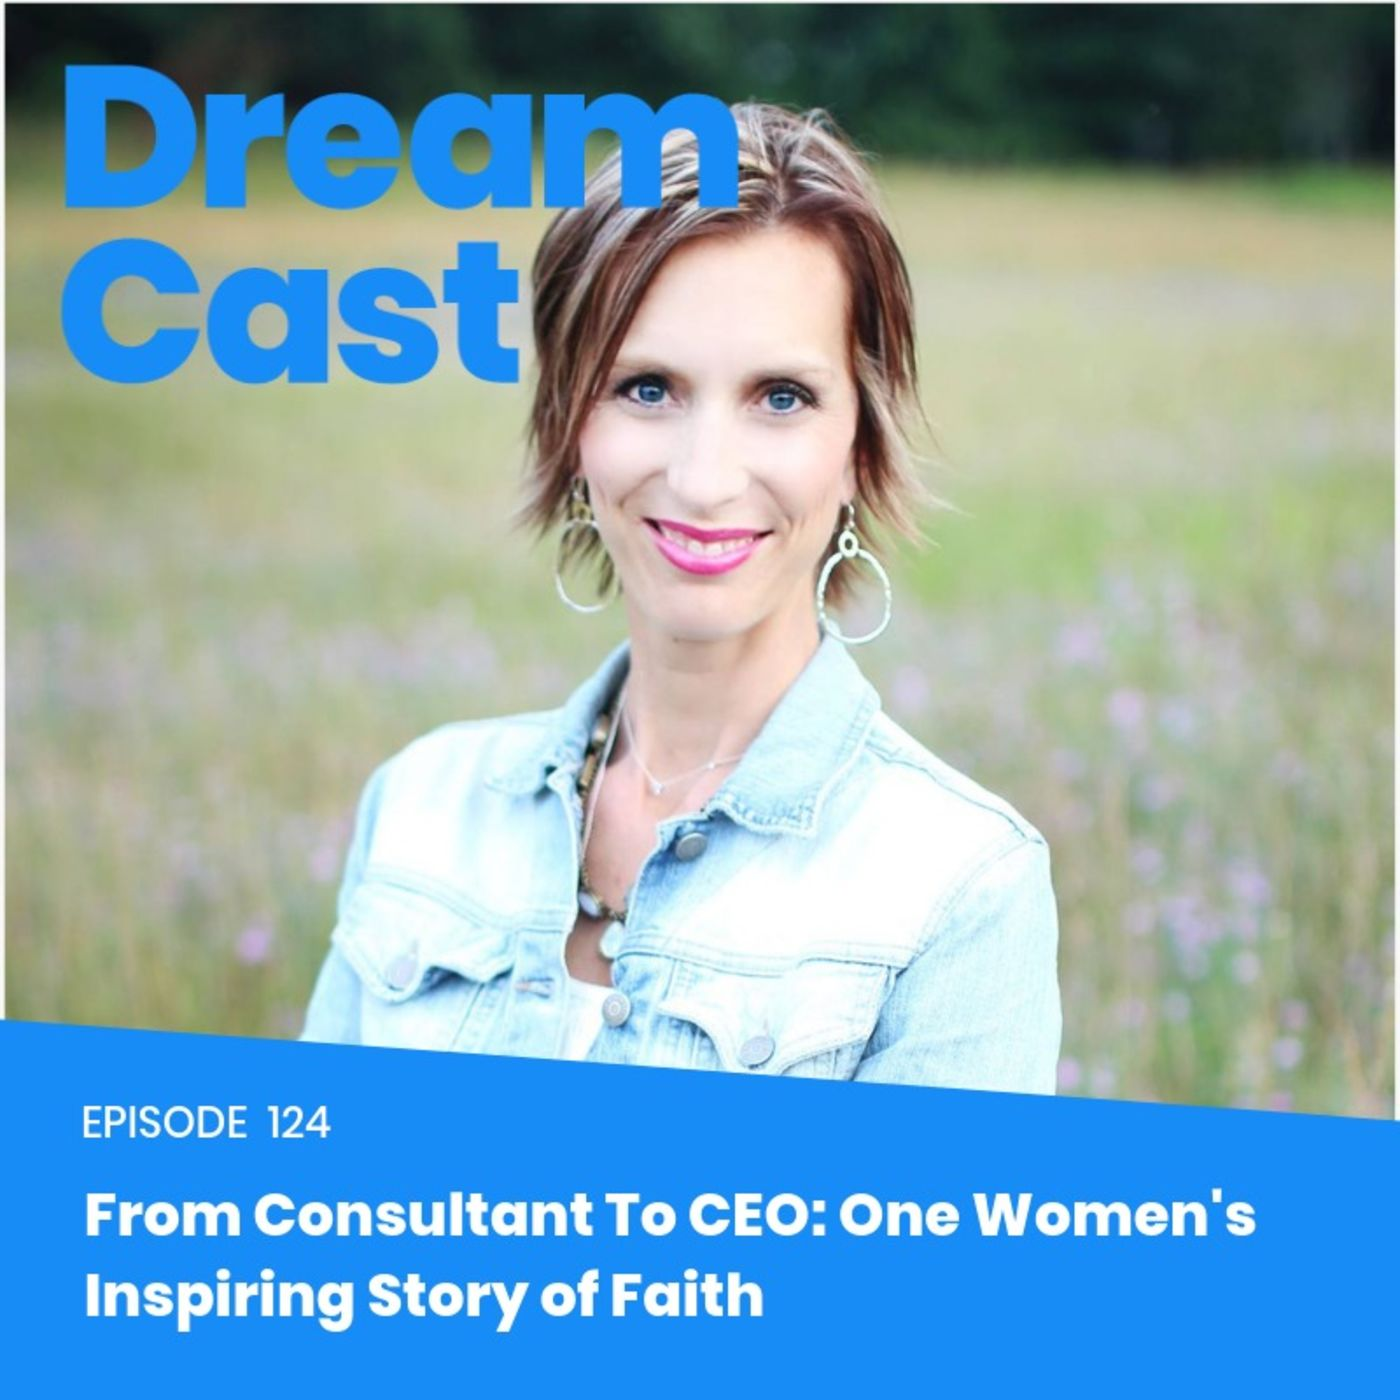 Ep: 125 - From Consultant To CEO: One Women's Inspiring Story of Faith with Heidi VanderWal